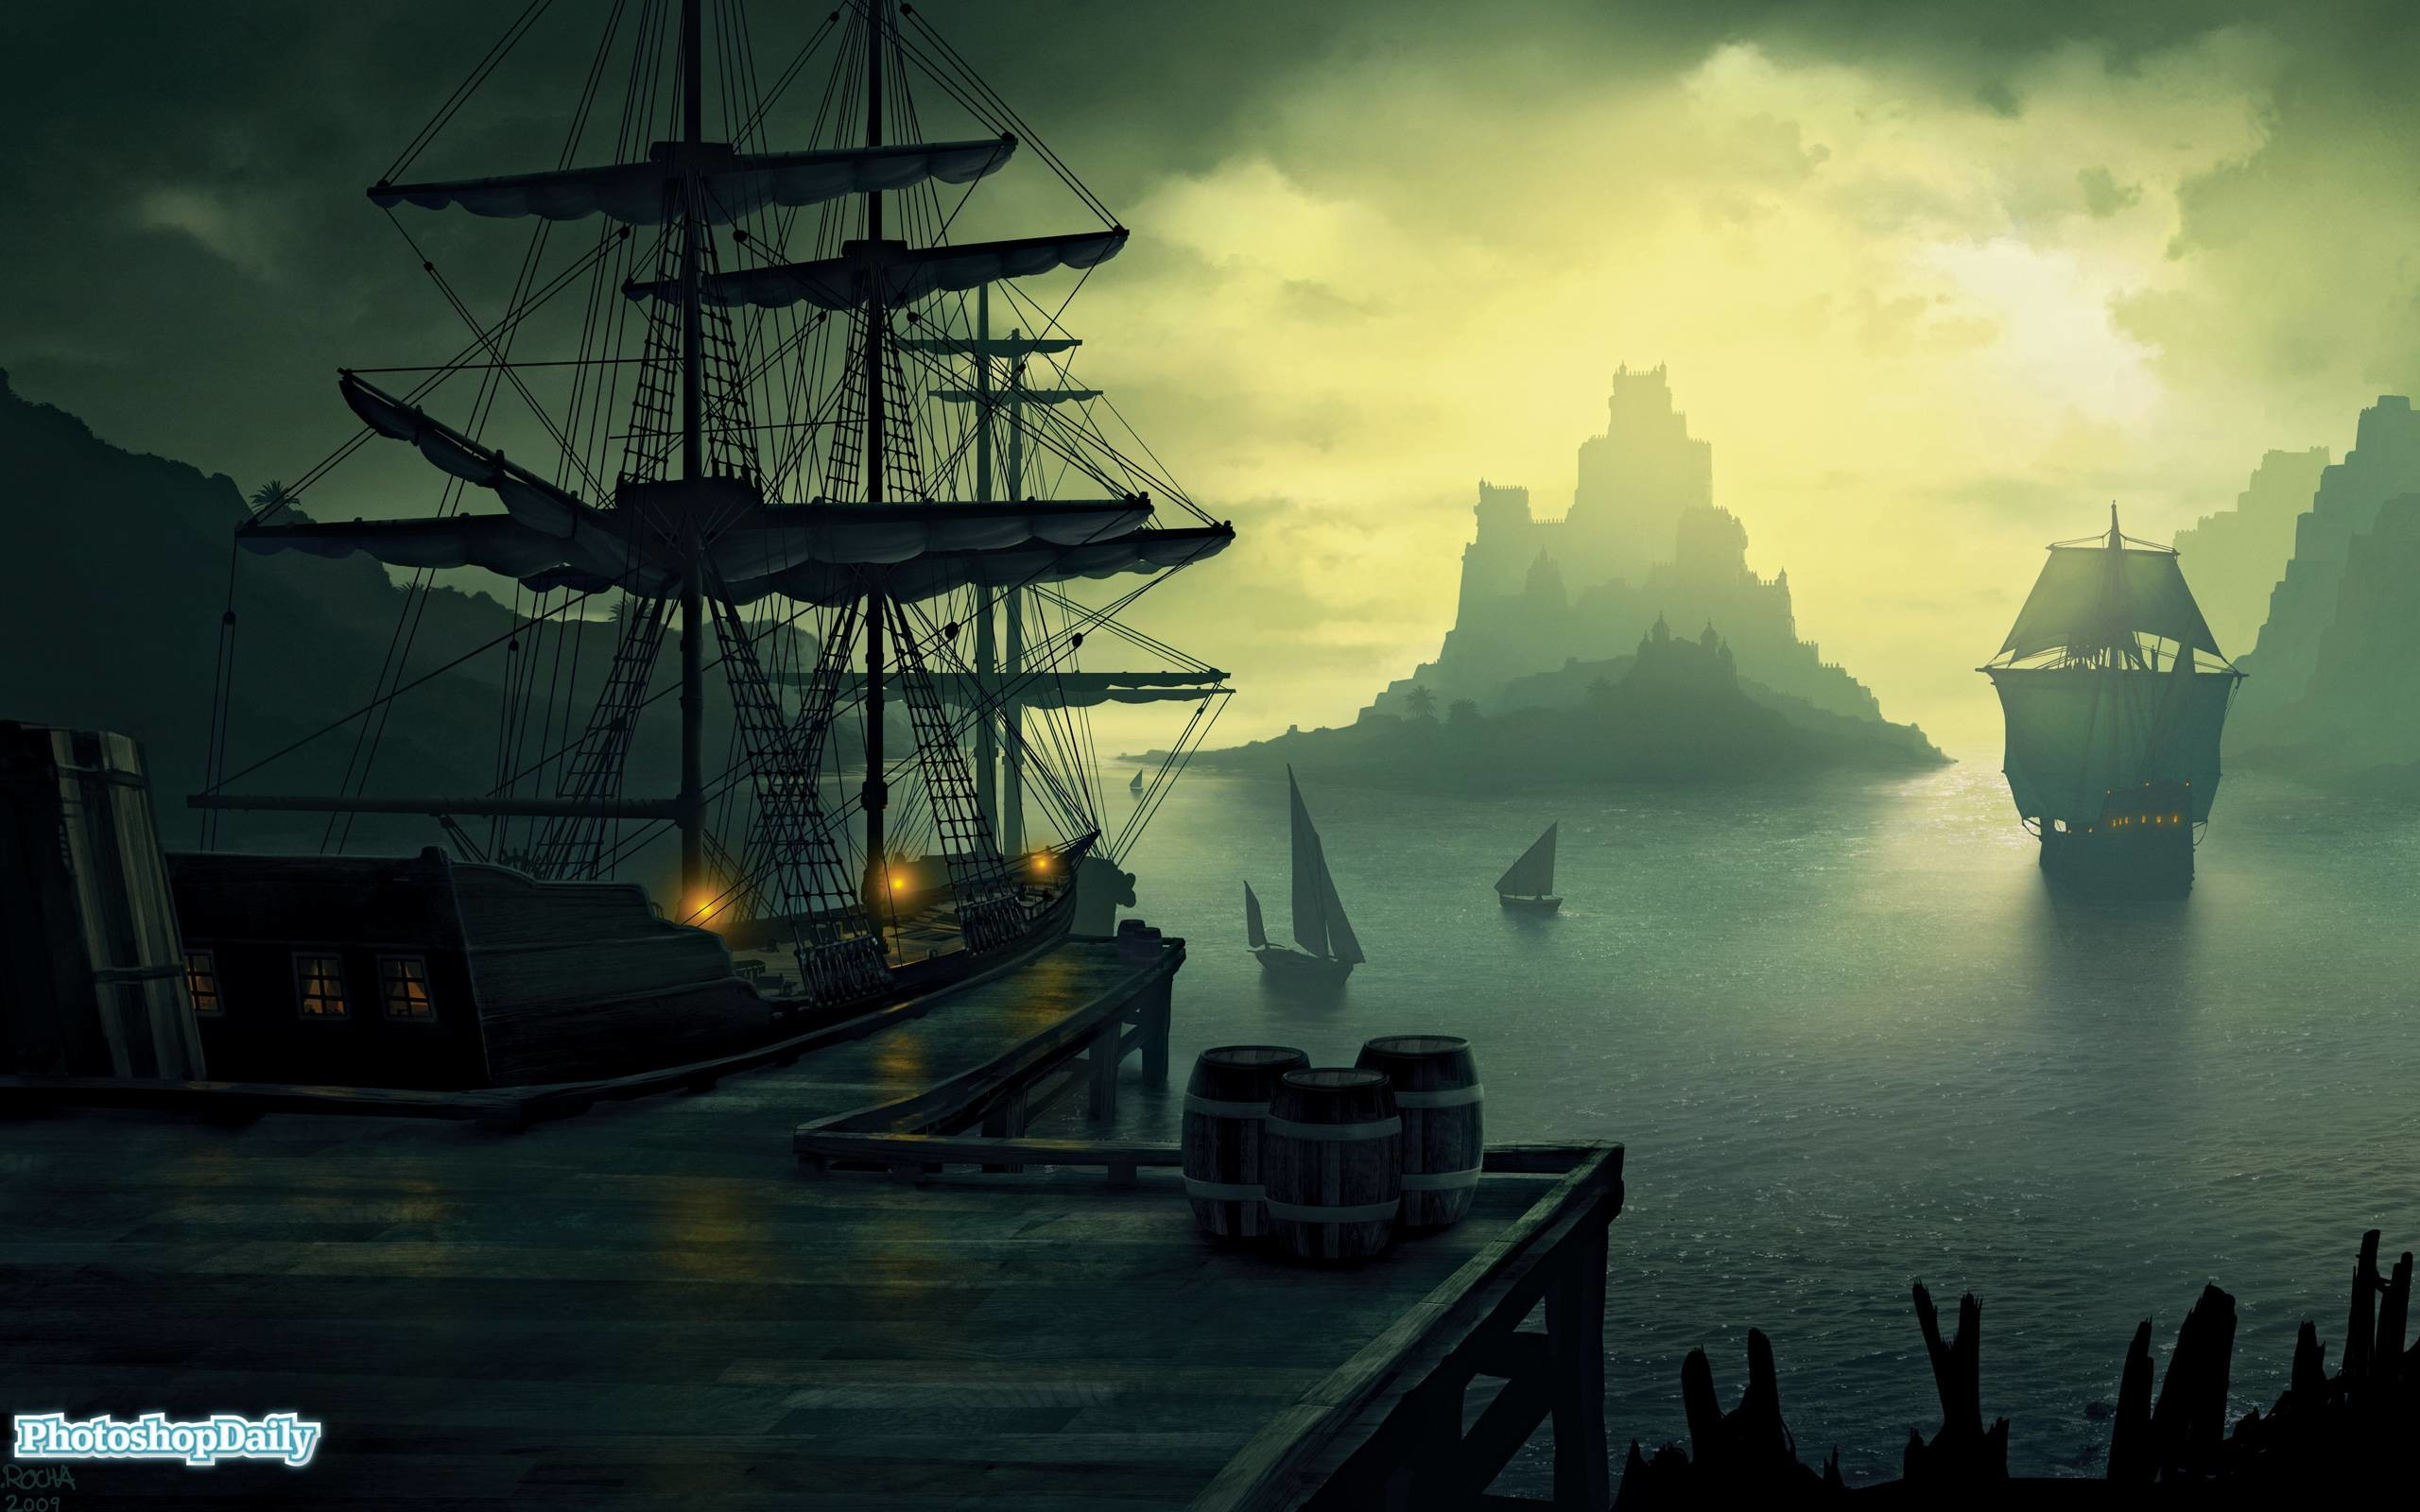 2560x1600 Pirate Ship Wallpapers and Background